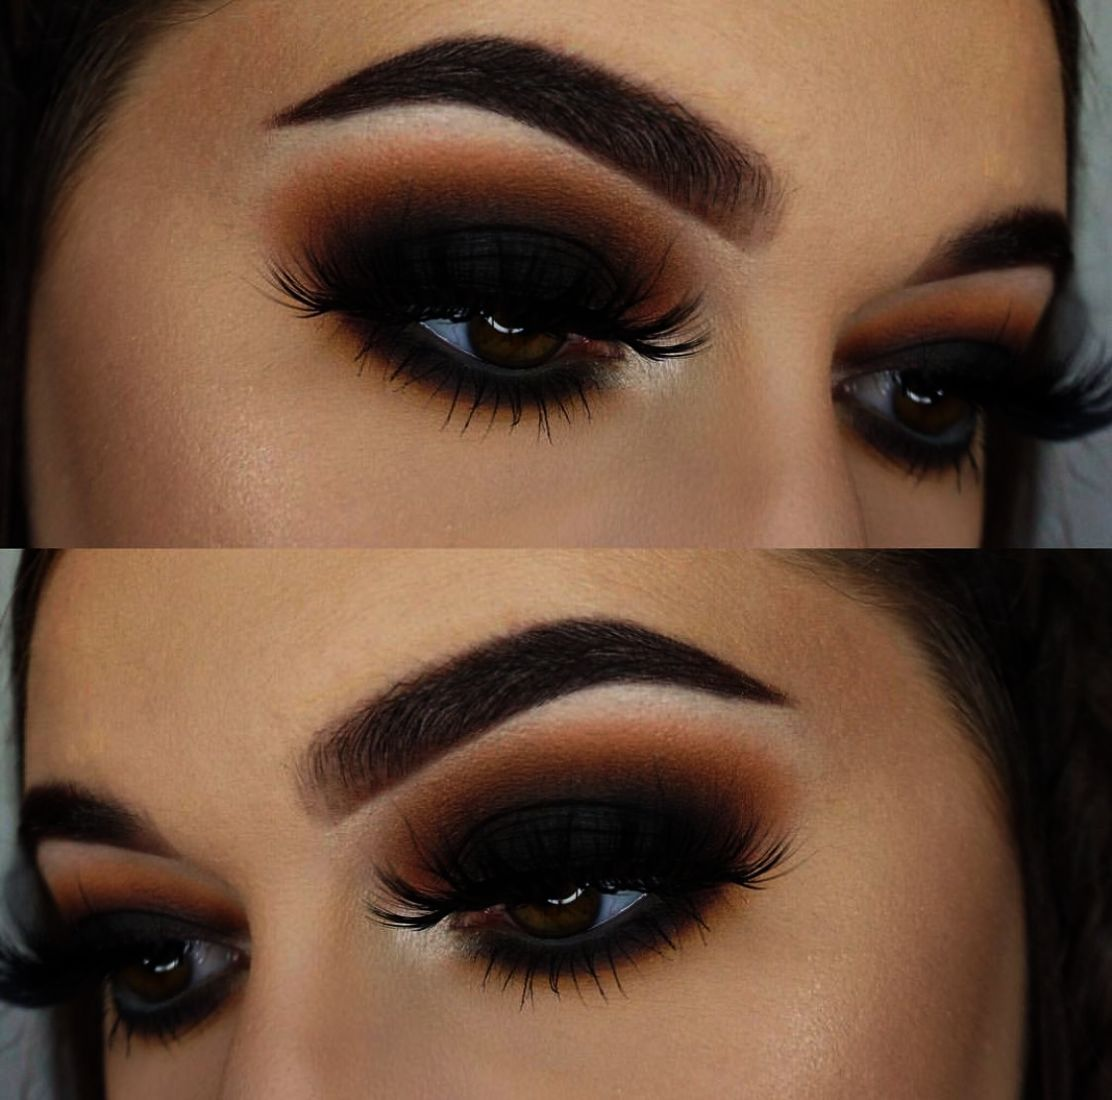 look what i found >> smokey eye look images #facebook